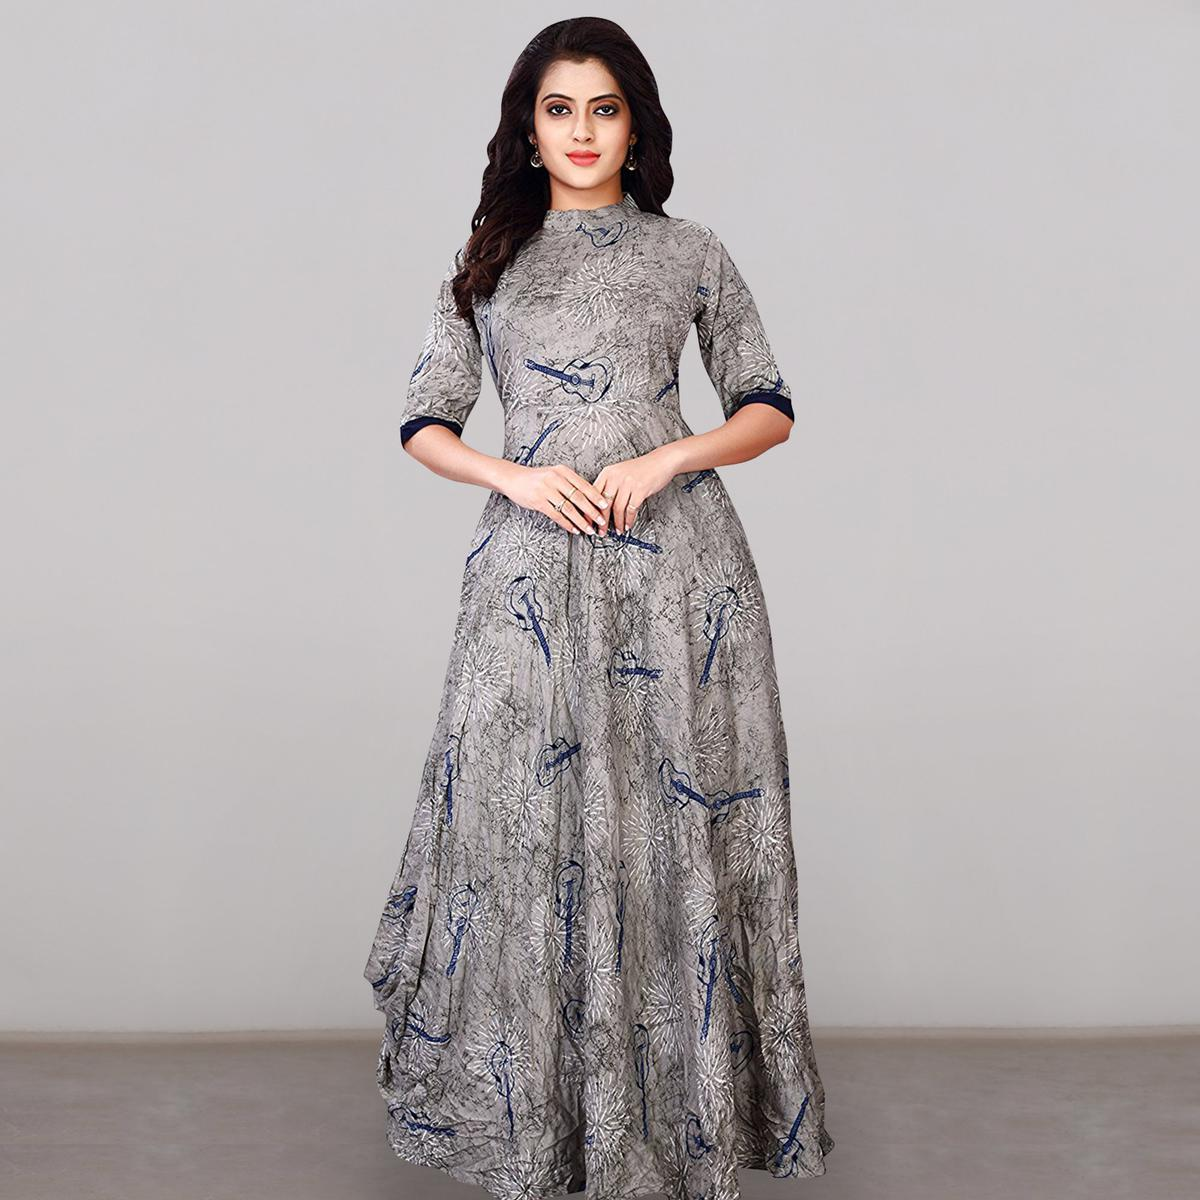 86a741a059 Buy Captivating Gray Colored Partywear Printed Rayon Long Kurti for womens  online India, Best Prices, Reviews - Peachmode